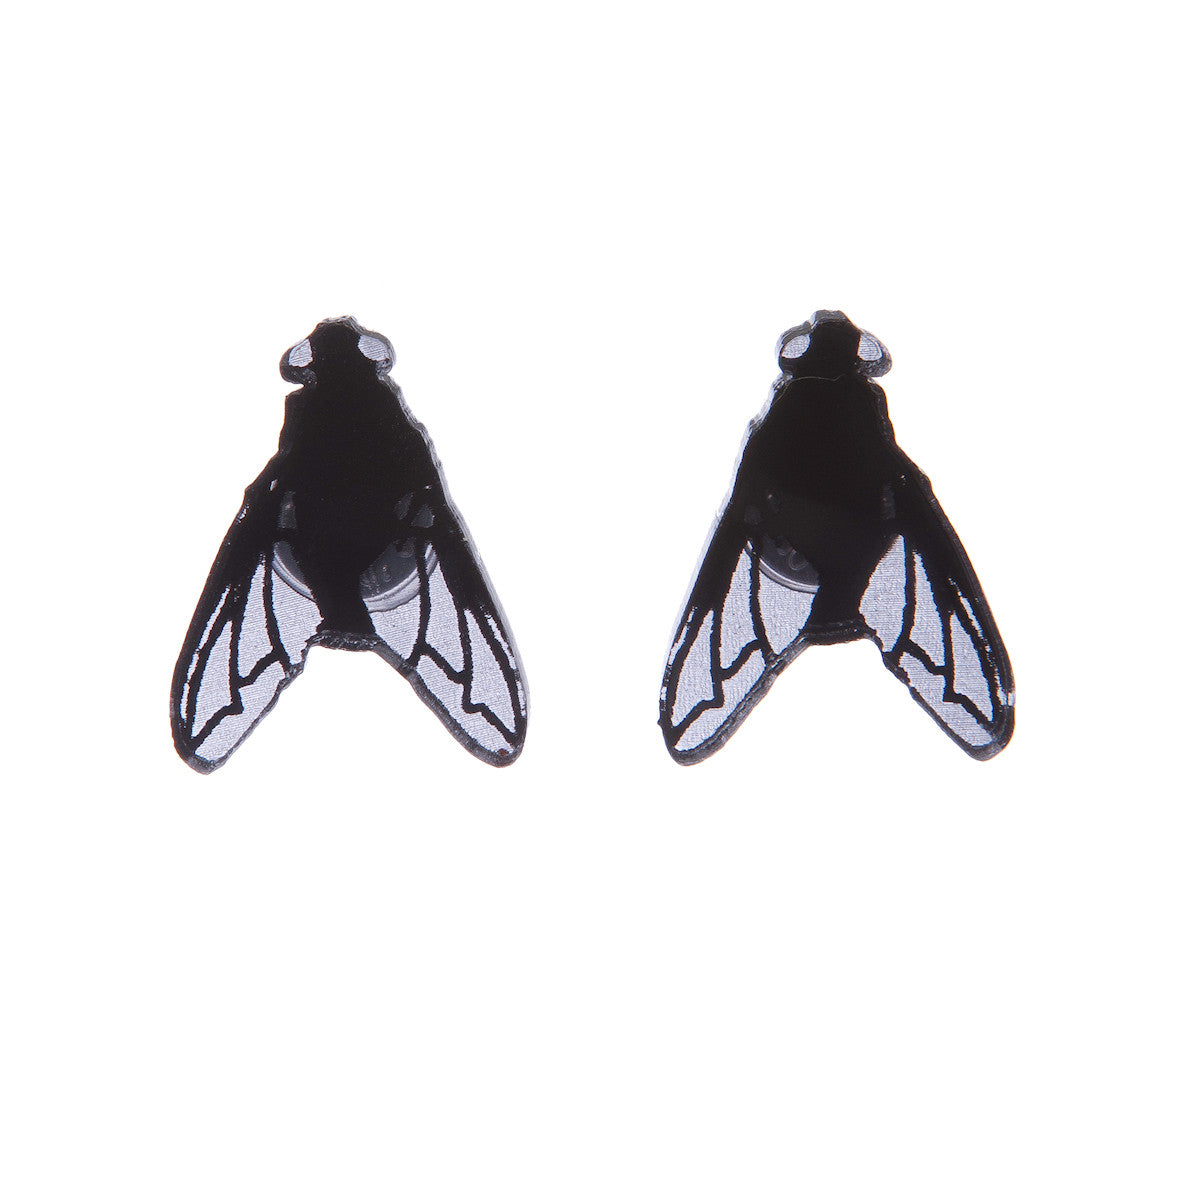 Sugar & Vice Dead Fly Earrings